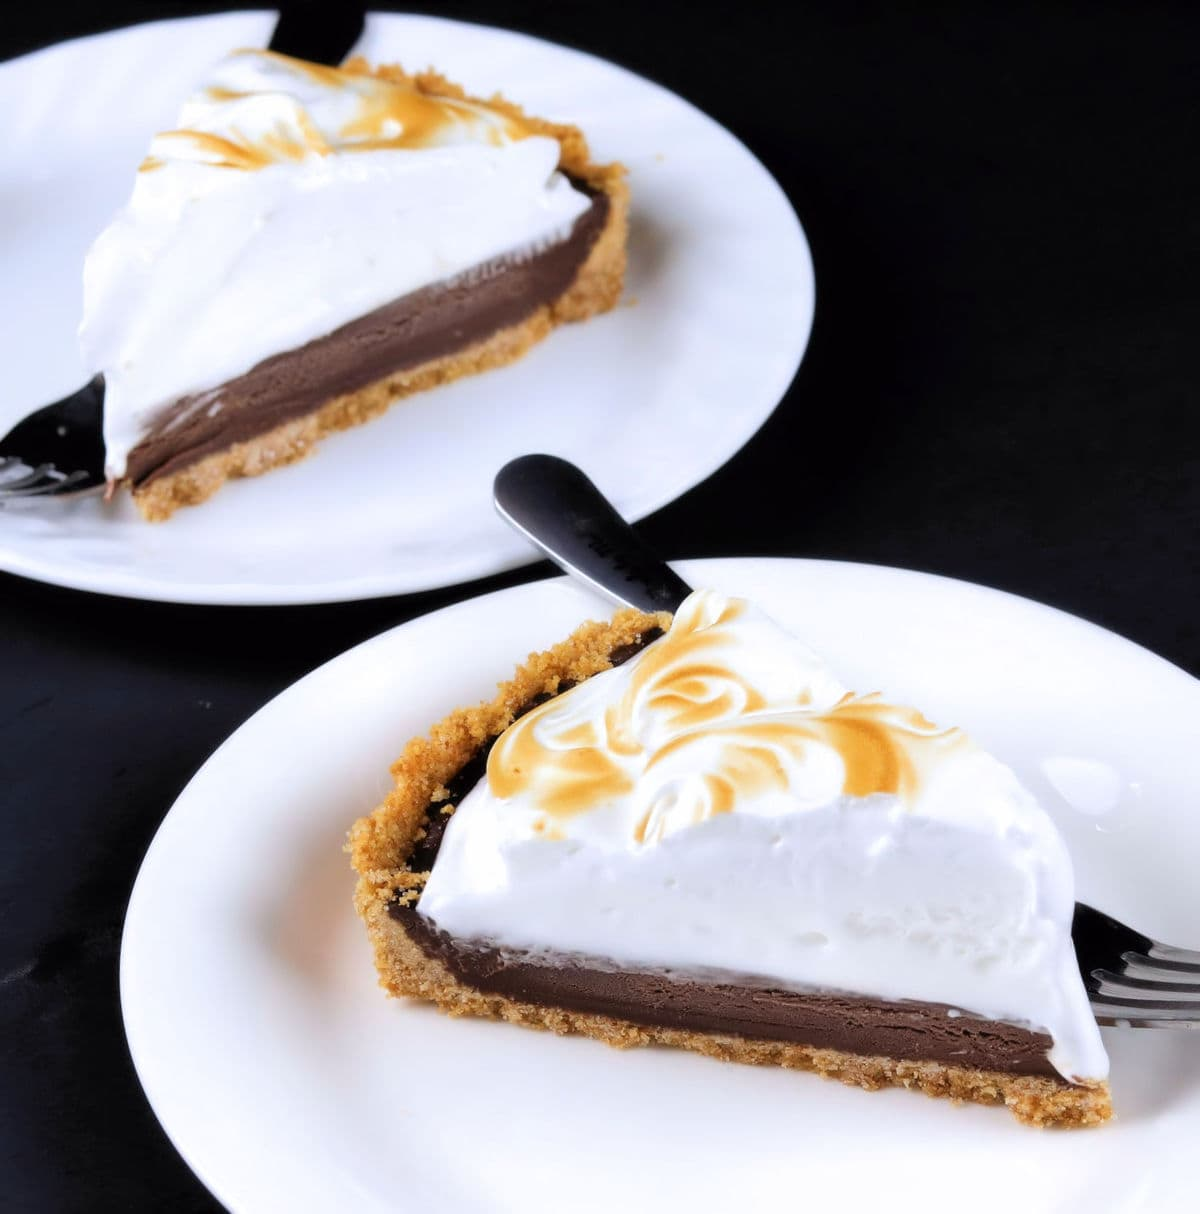 Slices of S'mores Pie